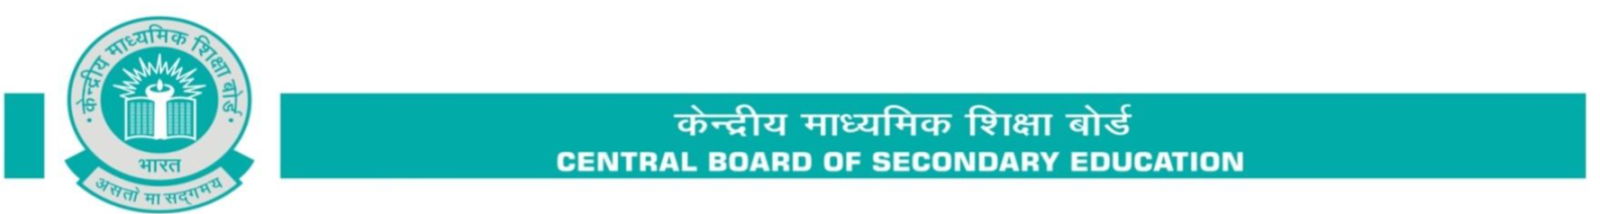 central-board-secondary-education-CBSE